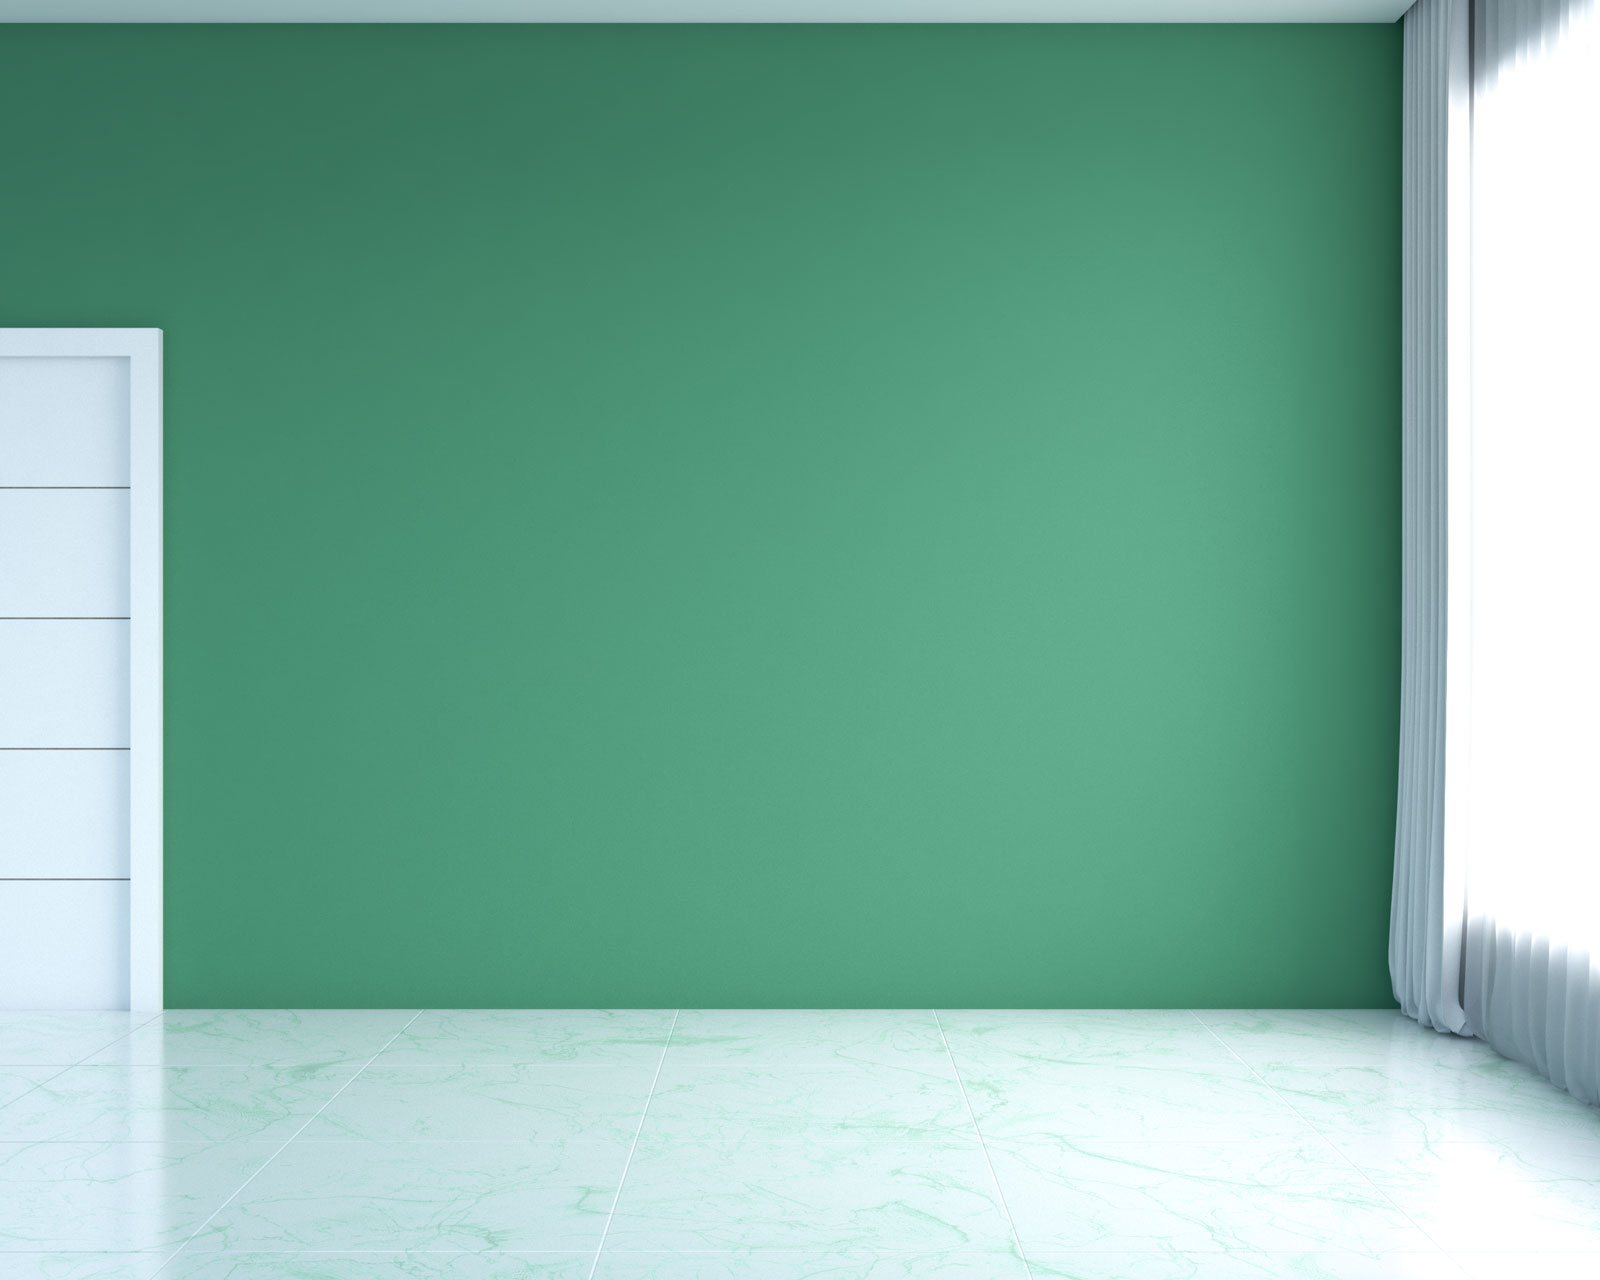 White marble with green vein flooring with green walls